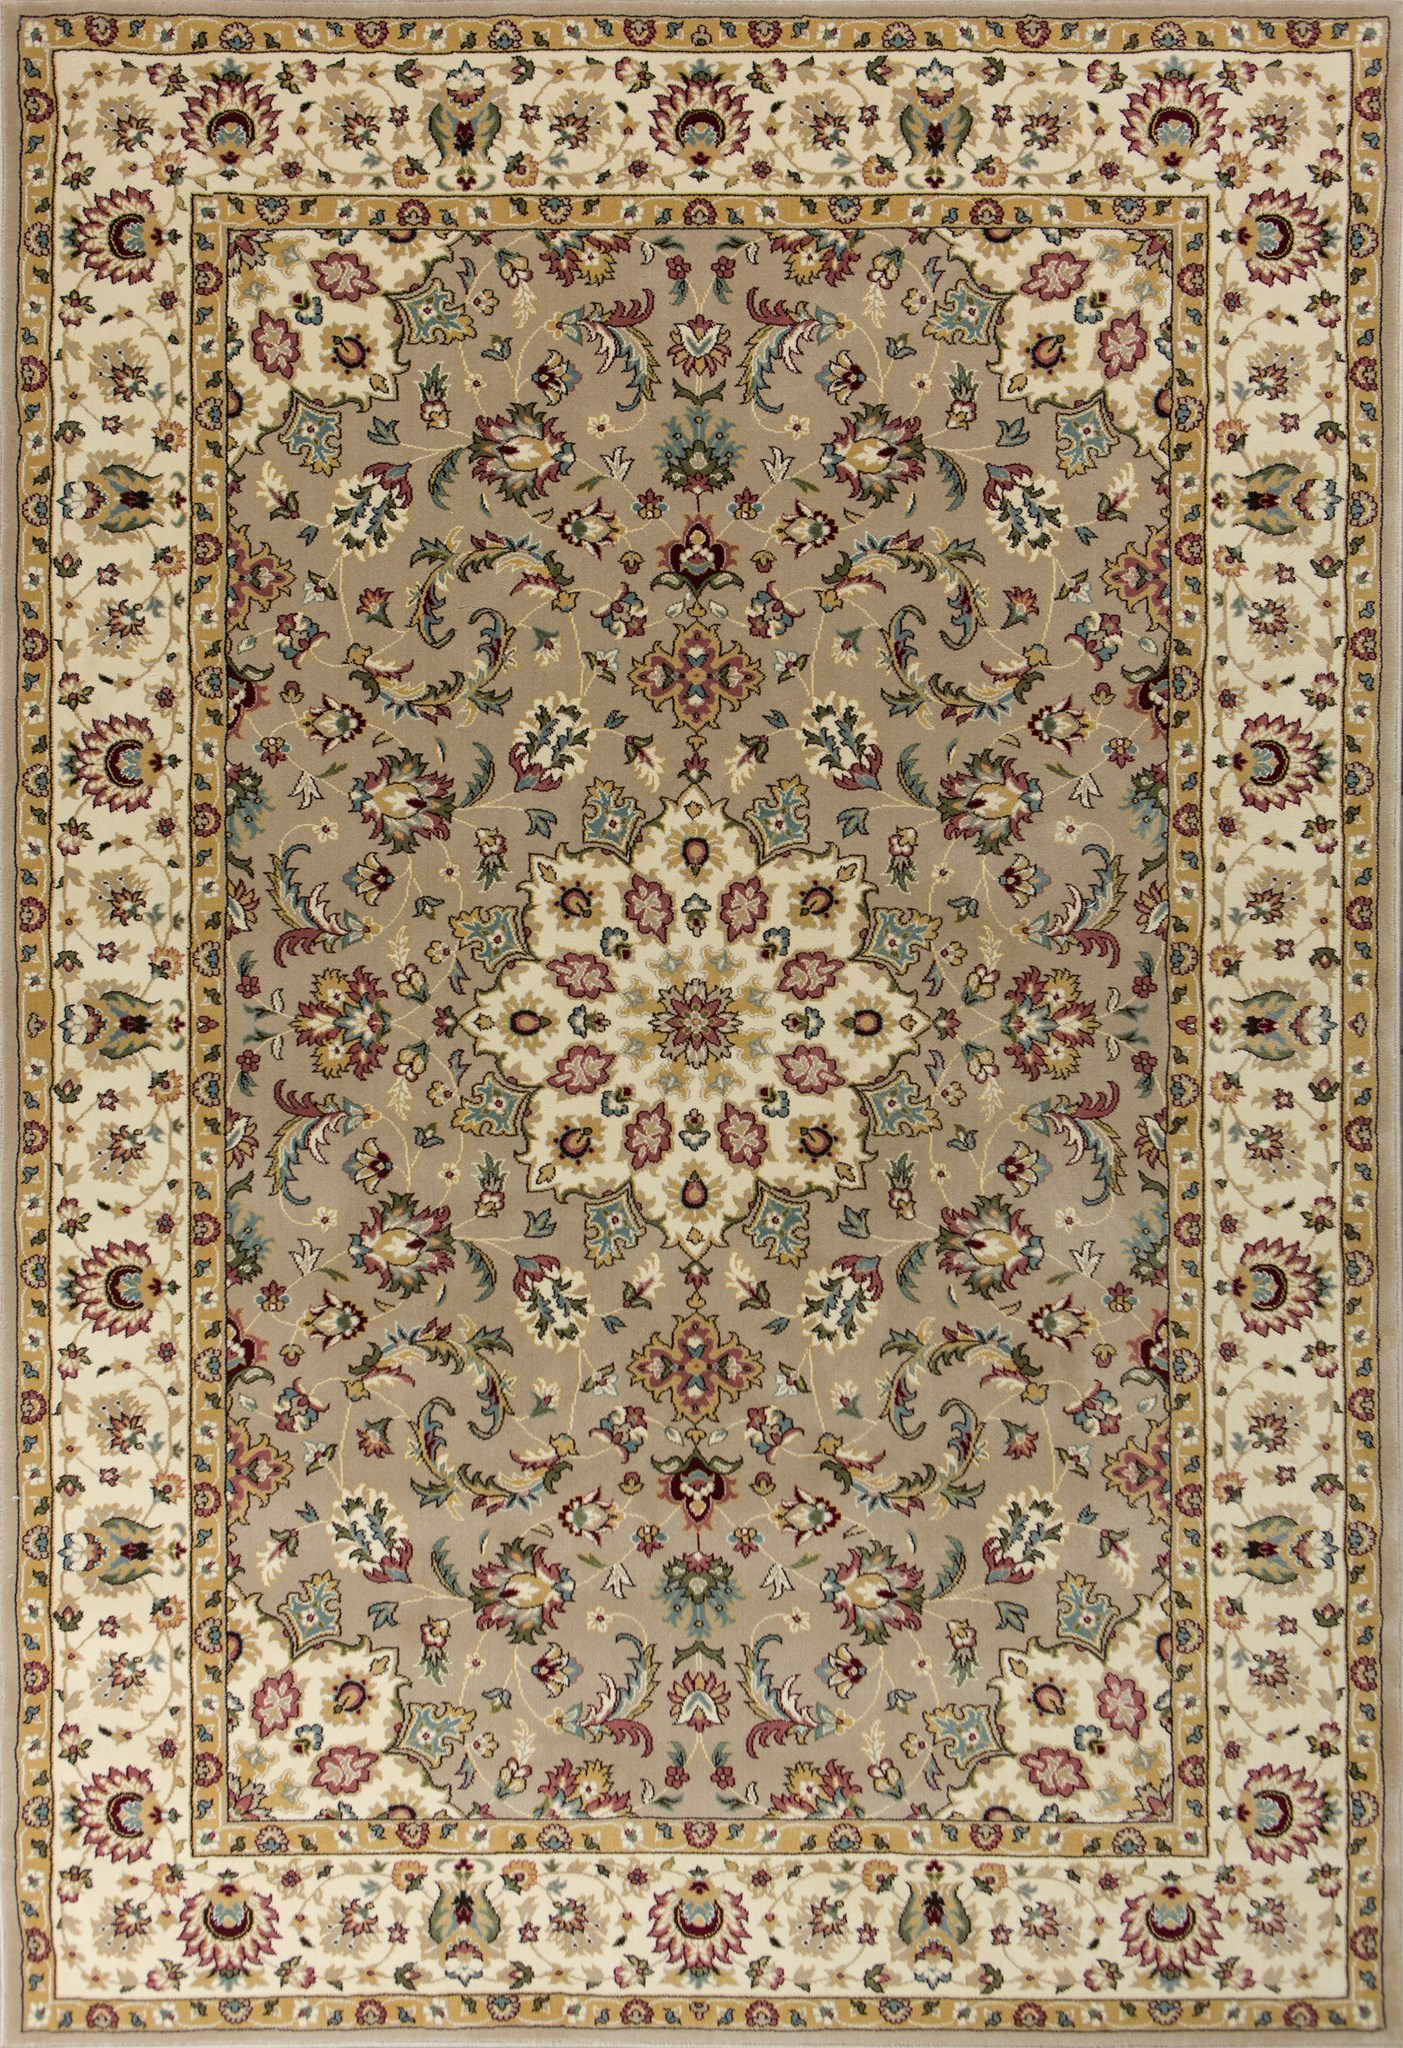 Kingston 6413 Beige/Ivory Tabriz